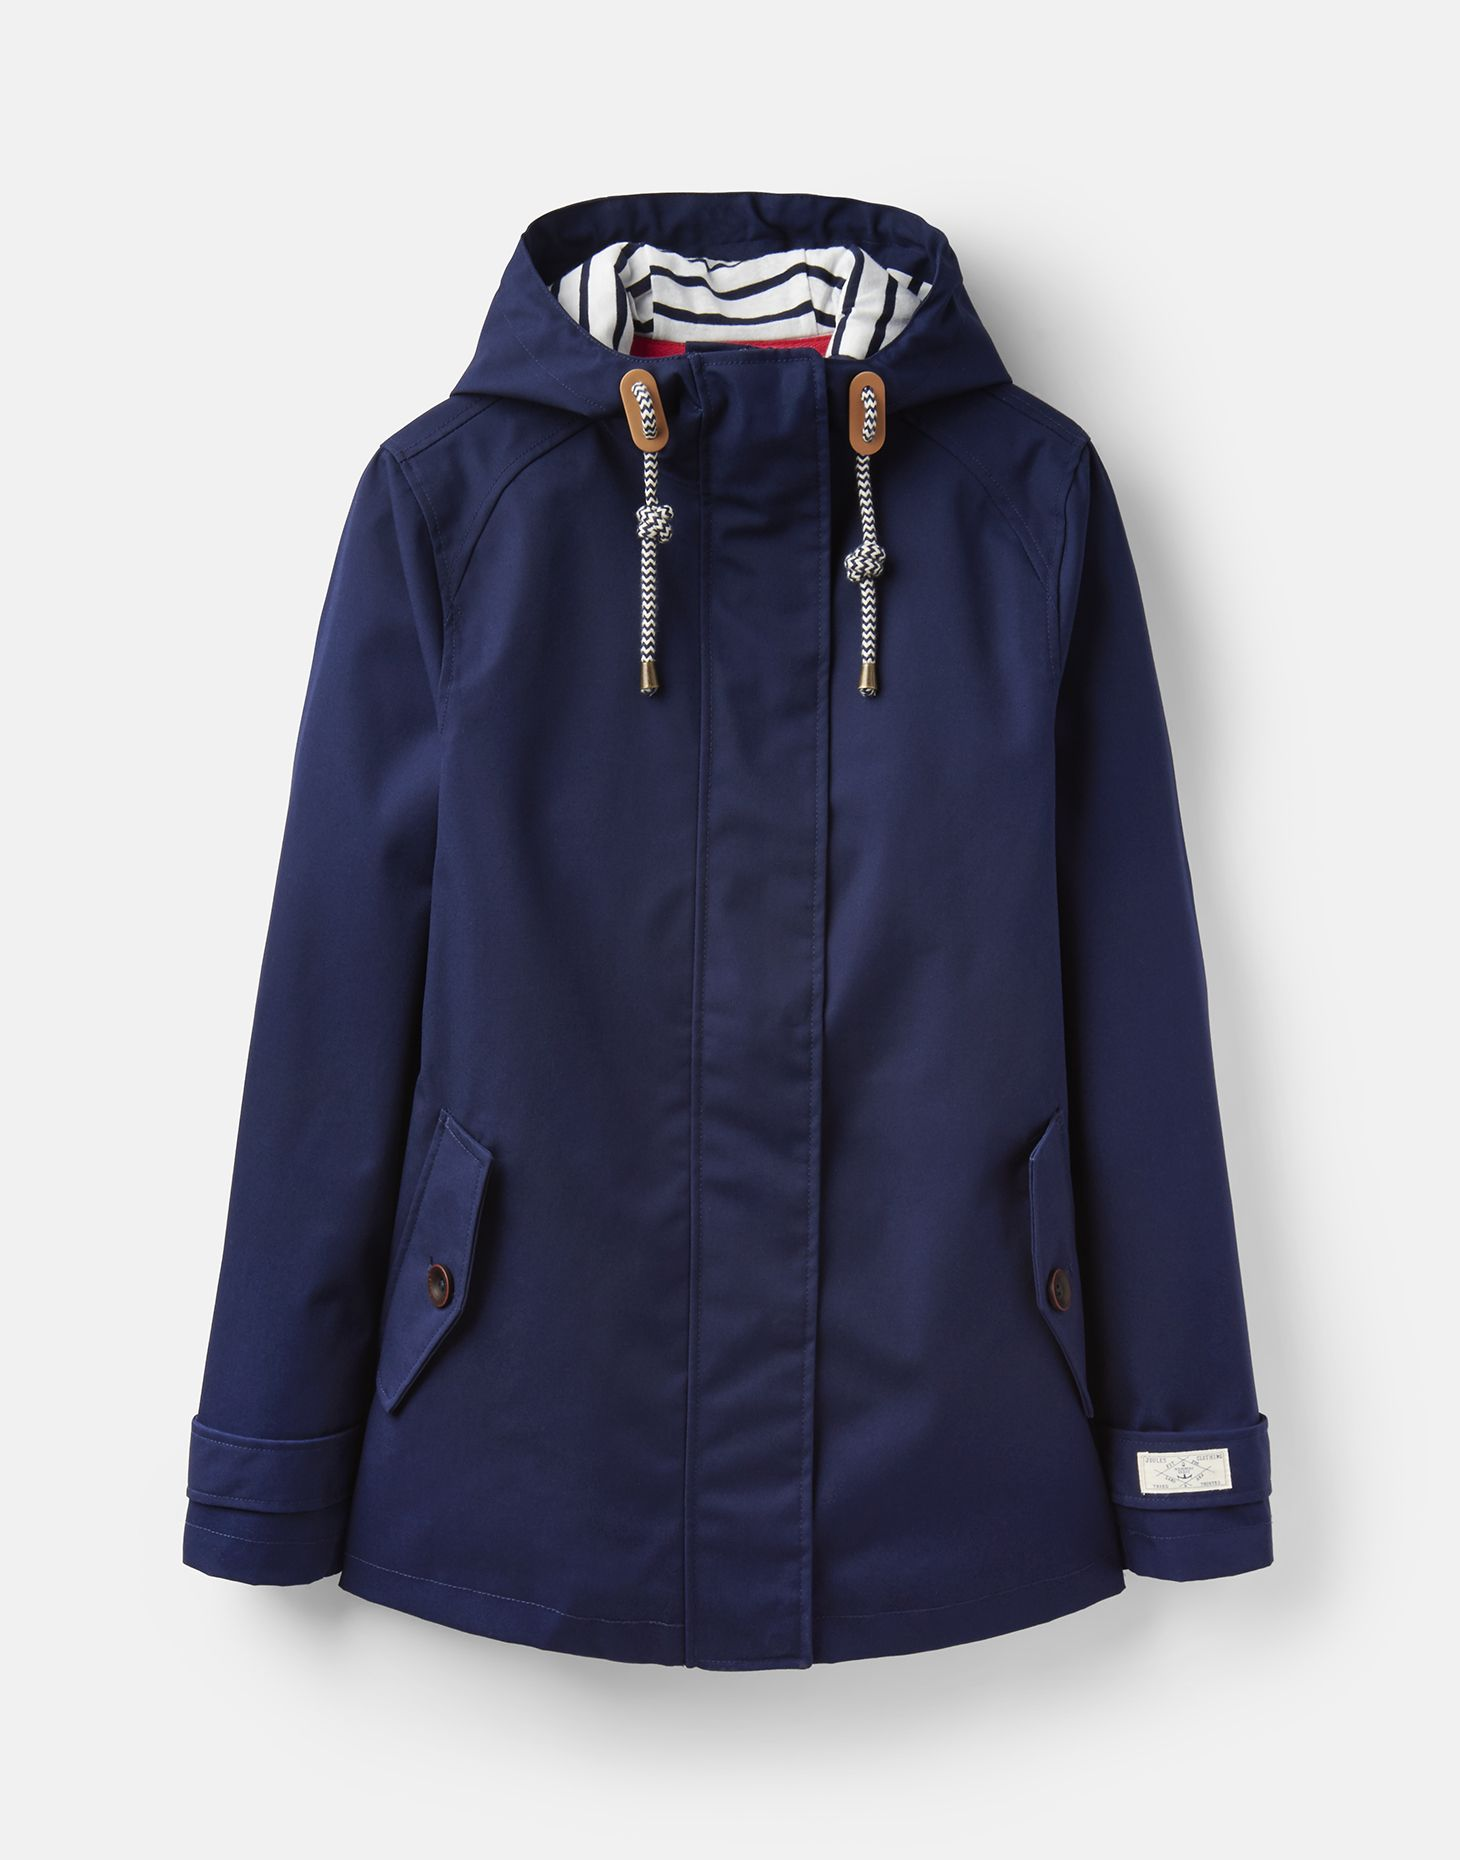 exquisite craftsmanship super service first look Details about Joules 207519 Waterproof Coat in FRENCH NAVY